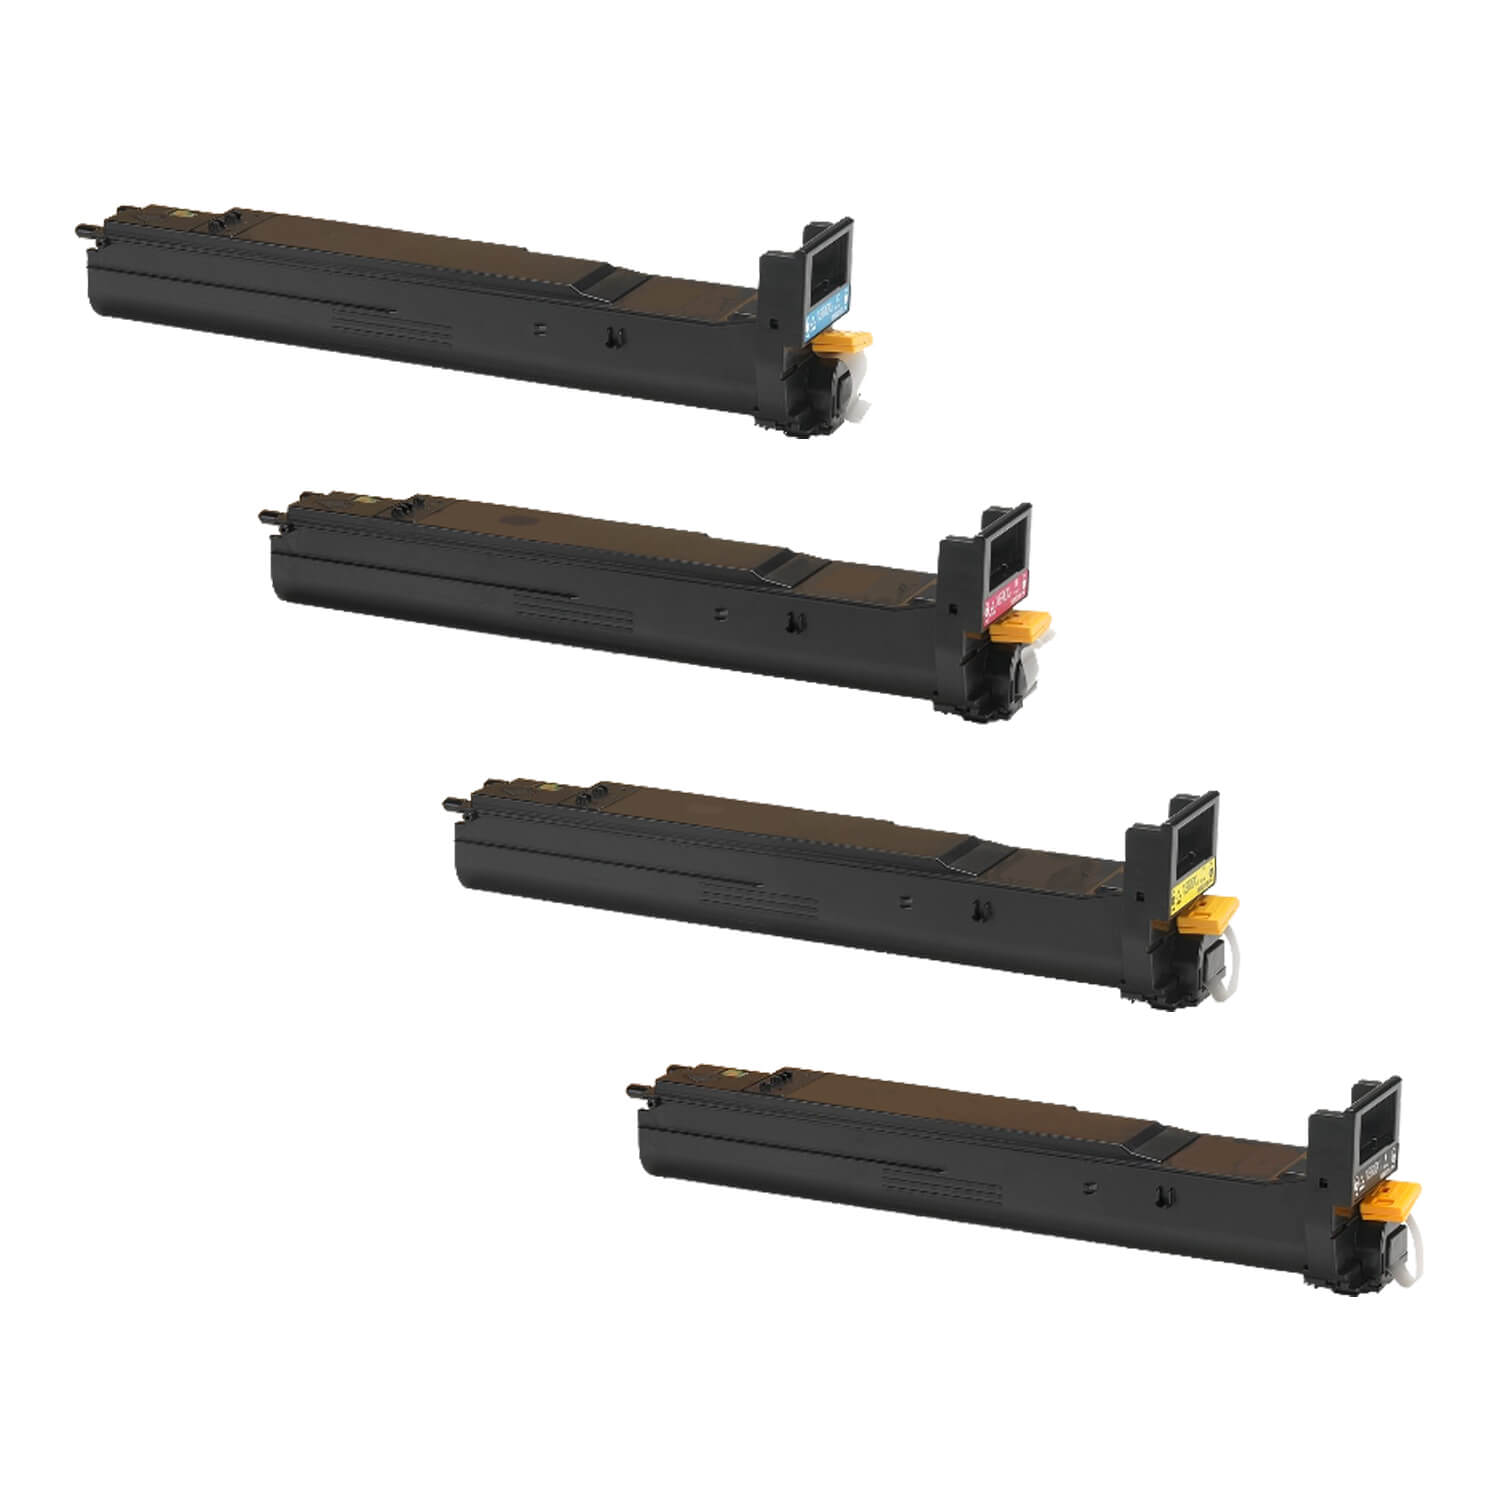 Compatible Xerox 6400 Toner High Capacity Pack - 4 Cartridges